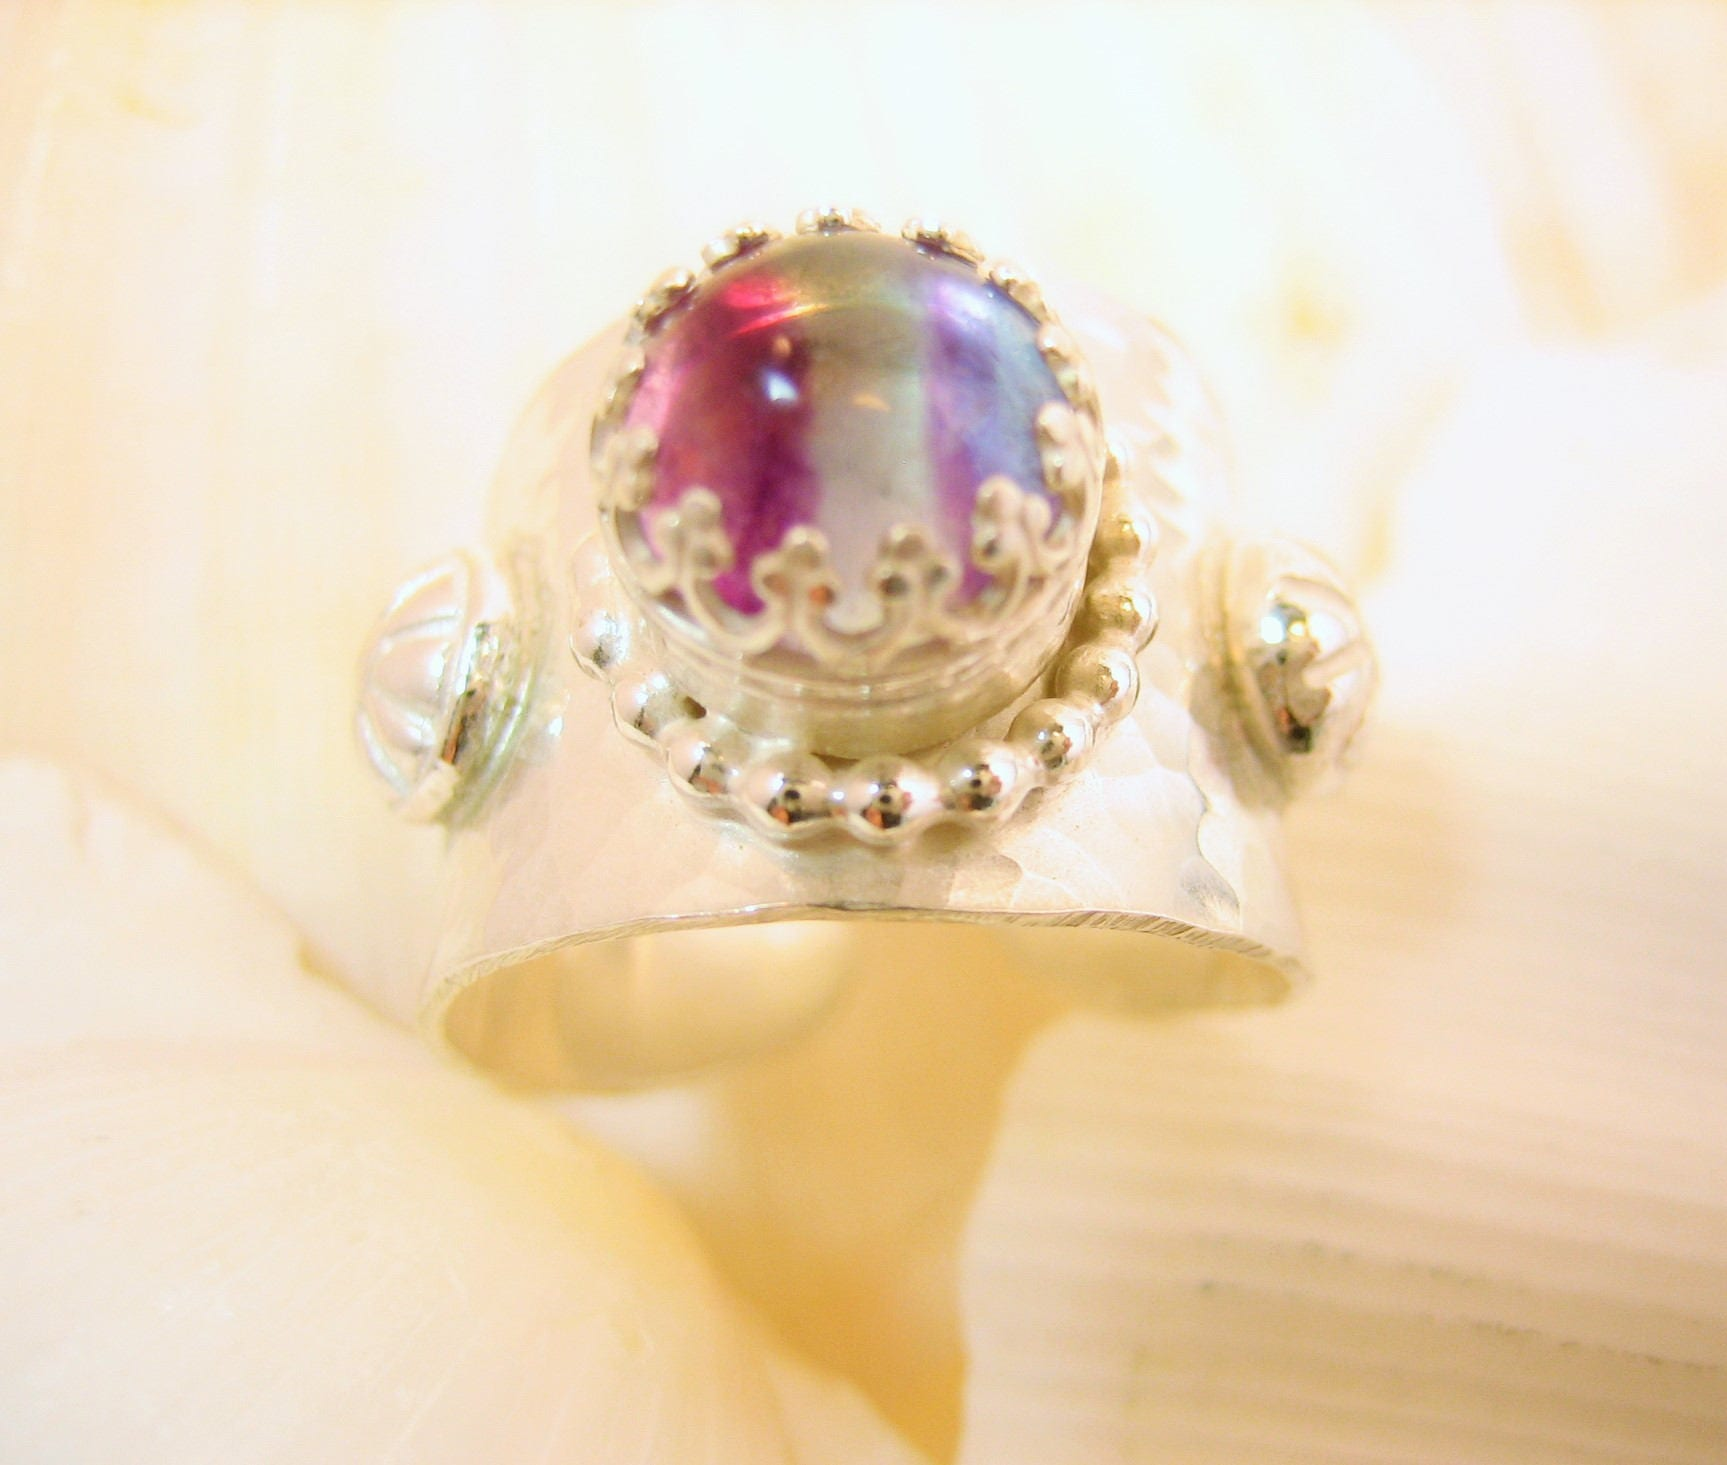 Princess rainbow adjustable ring, hammered silver adjustable ring with rainbow gem, rainbow fluorite ring, fairy rainbow ring, regal ring